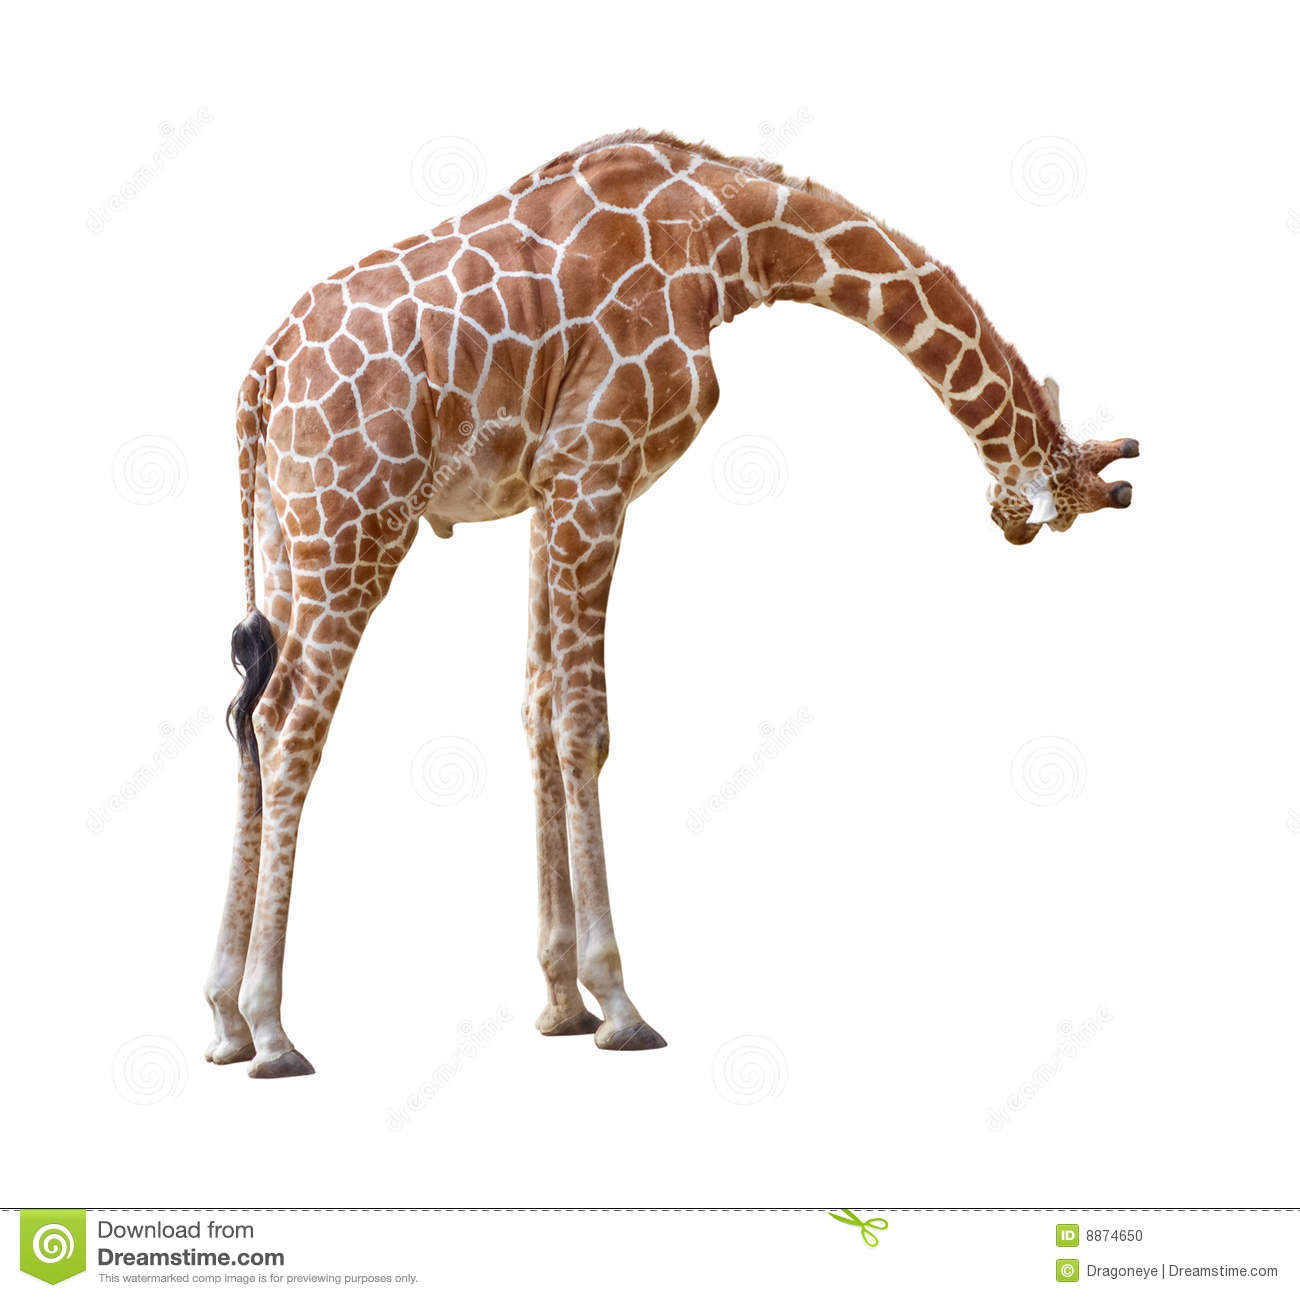 Giraffe Curiosity Cutout Stock Photo  Image 8874650. Excellent Accounting Resume Samples. Impressive Sample Resume Examples. Lackland Air Force Base Basic Training Graduation Dates. Free Printable Halloween Invitations For Adults. Federal Direct Graduate Plus Loan. Business Startup Checklist Template. Public Relations Plan Template. Christmas Mailing Labels Template